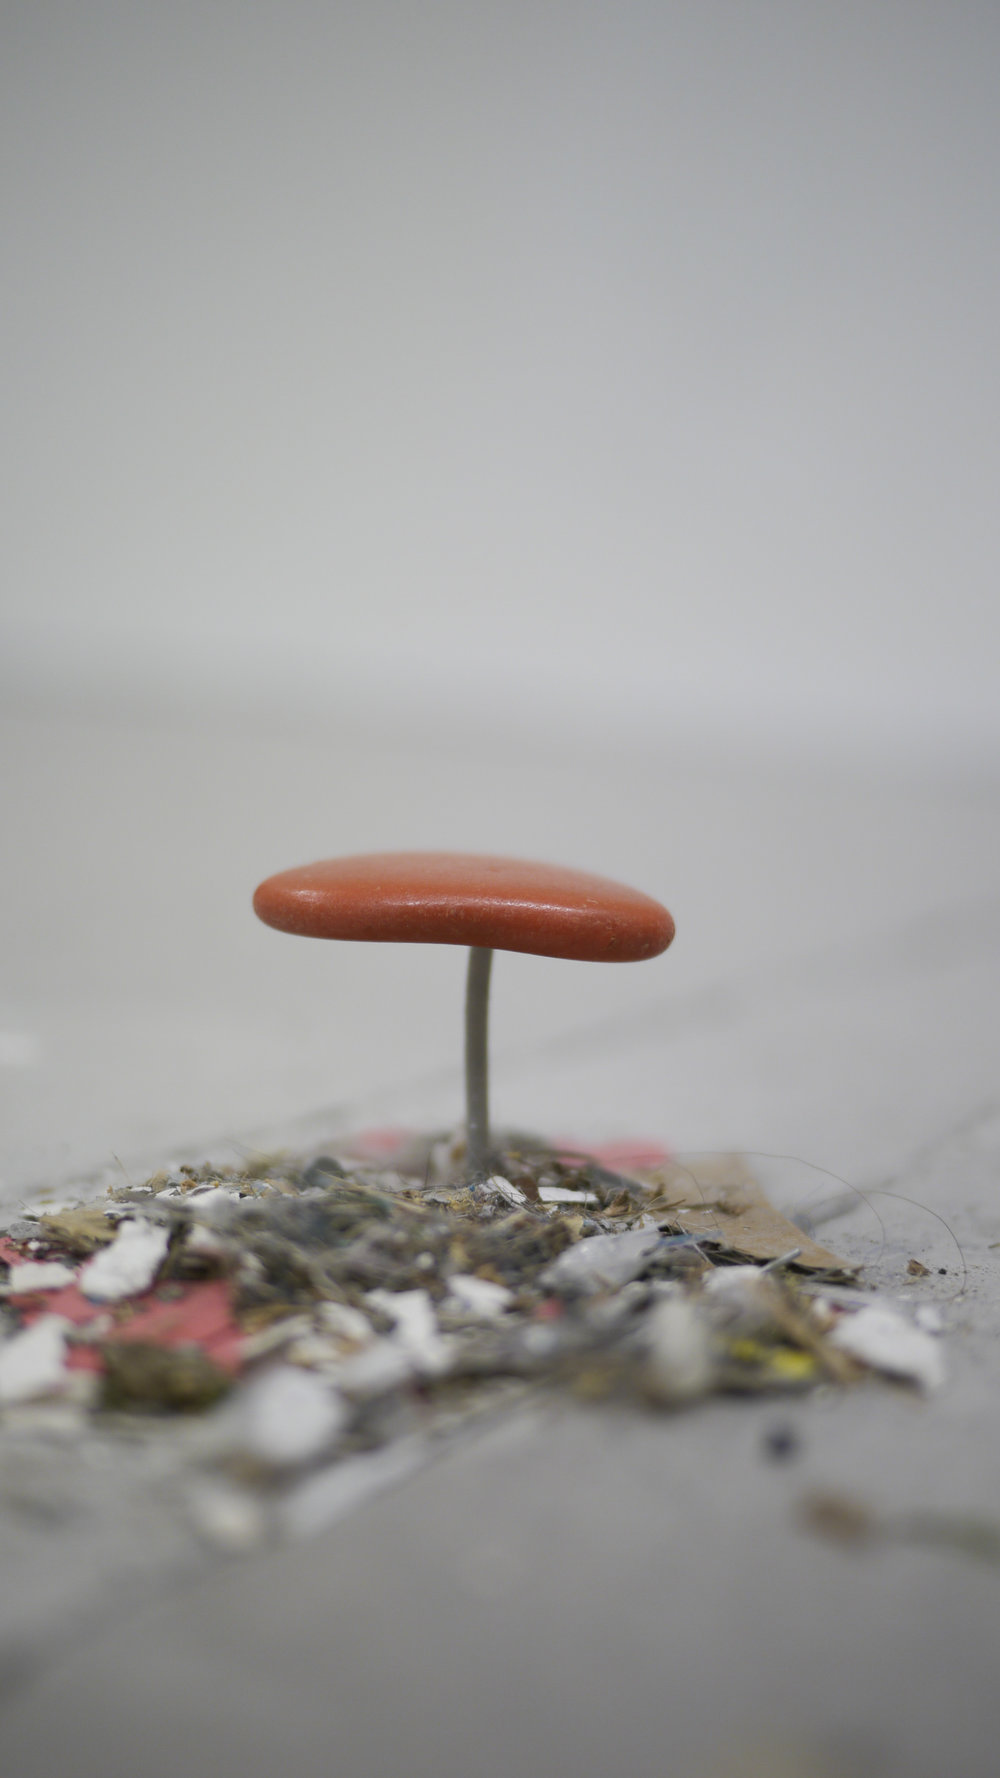 Ally McGinn (2017)  Studio Mushroom.  [Working Title]. Studio detritus. Size varies, approximately 5 x 5 x 2 cm.   This piece is more about the perceptual association of a mushroom than a pre-conceived idea or inspiration from nature.